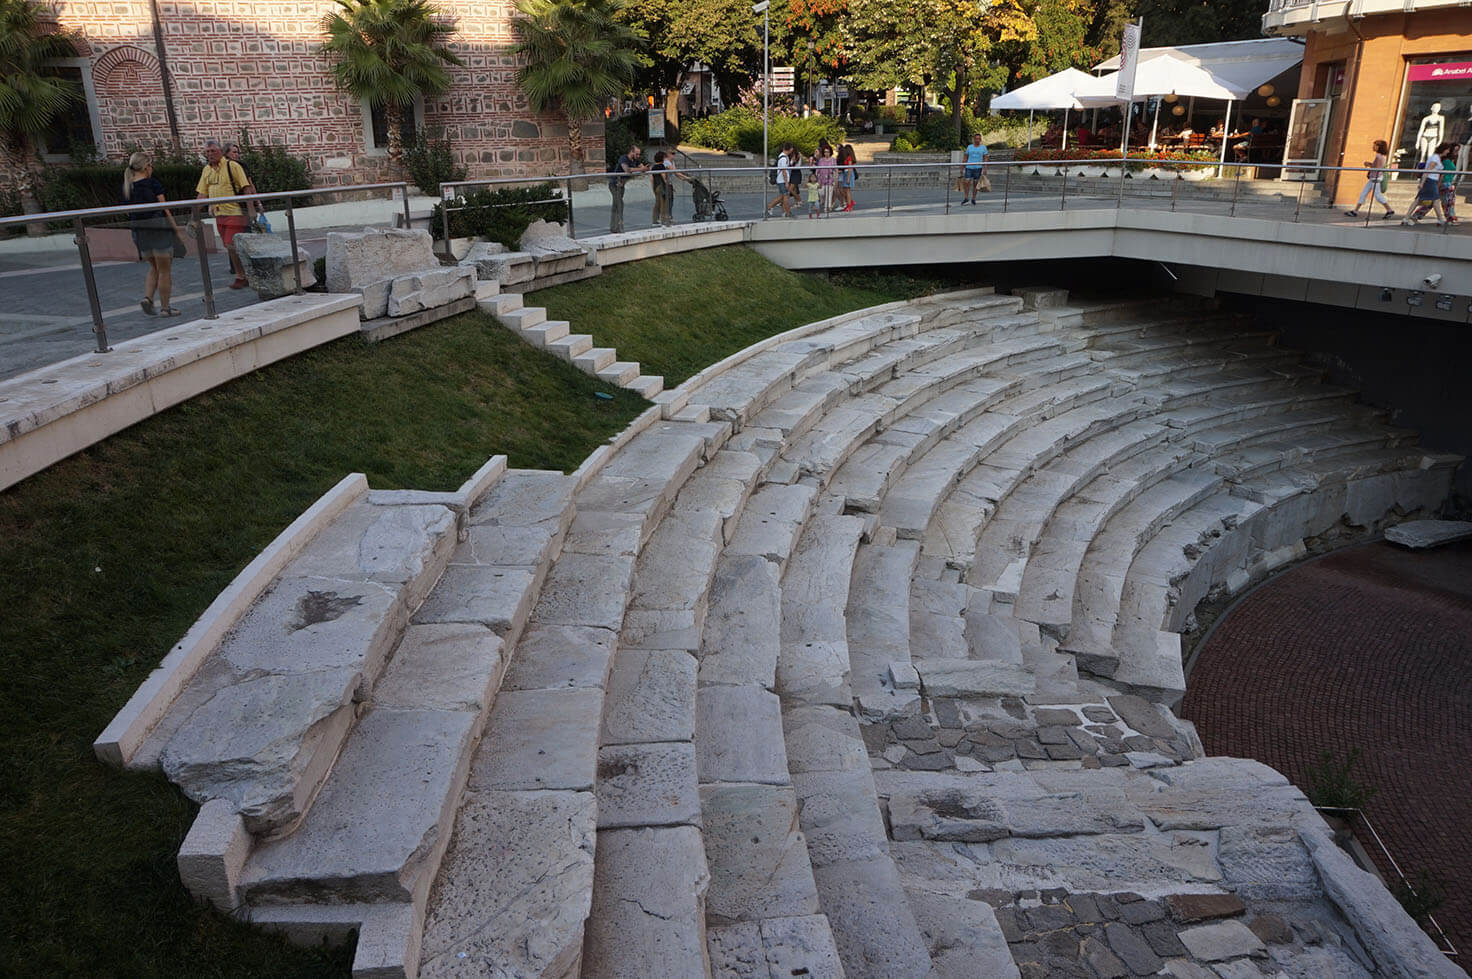 Plovdiv attractions - Ancient Stadium